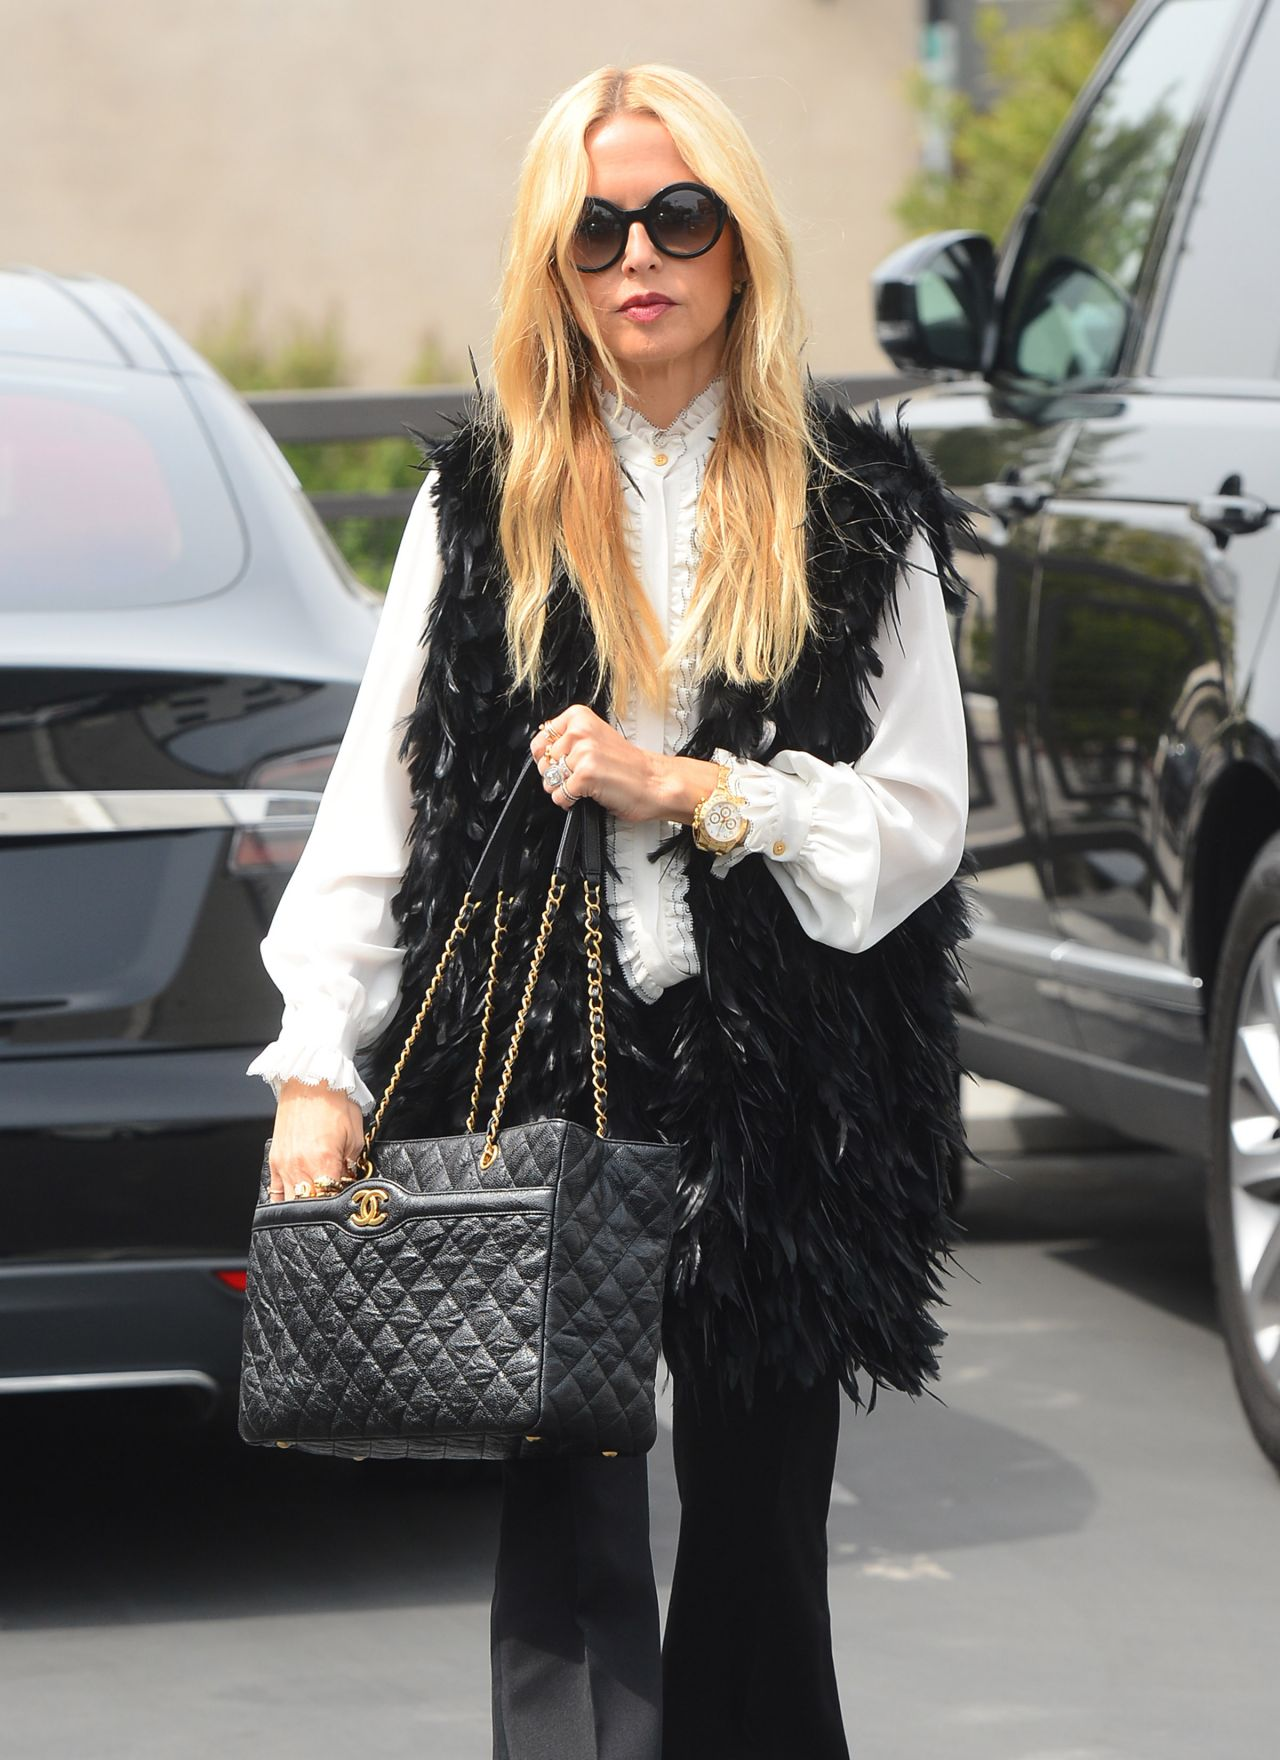 rachel zoe latest photos